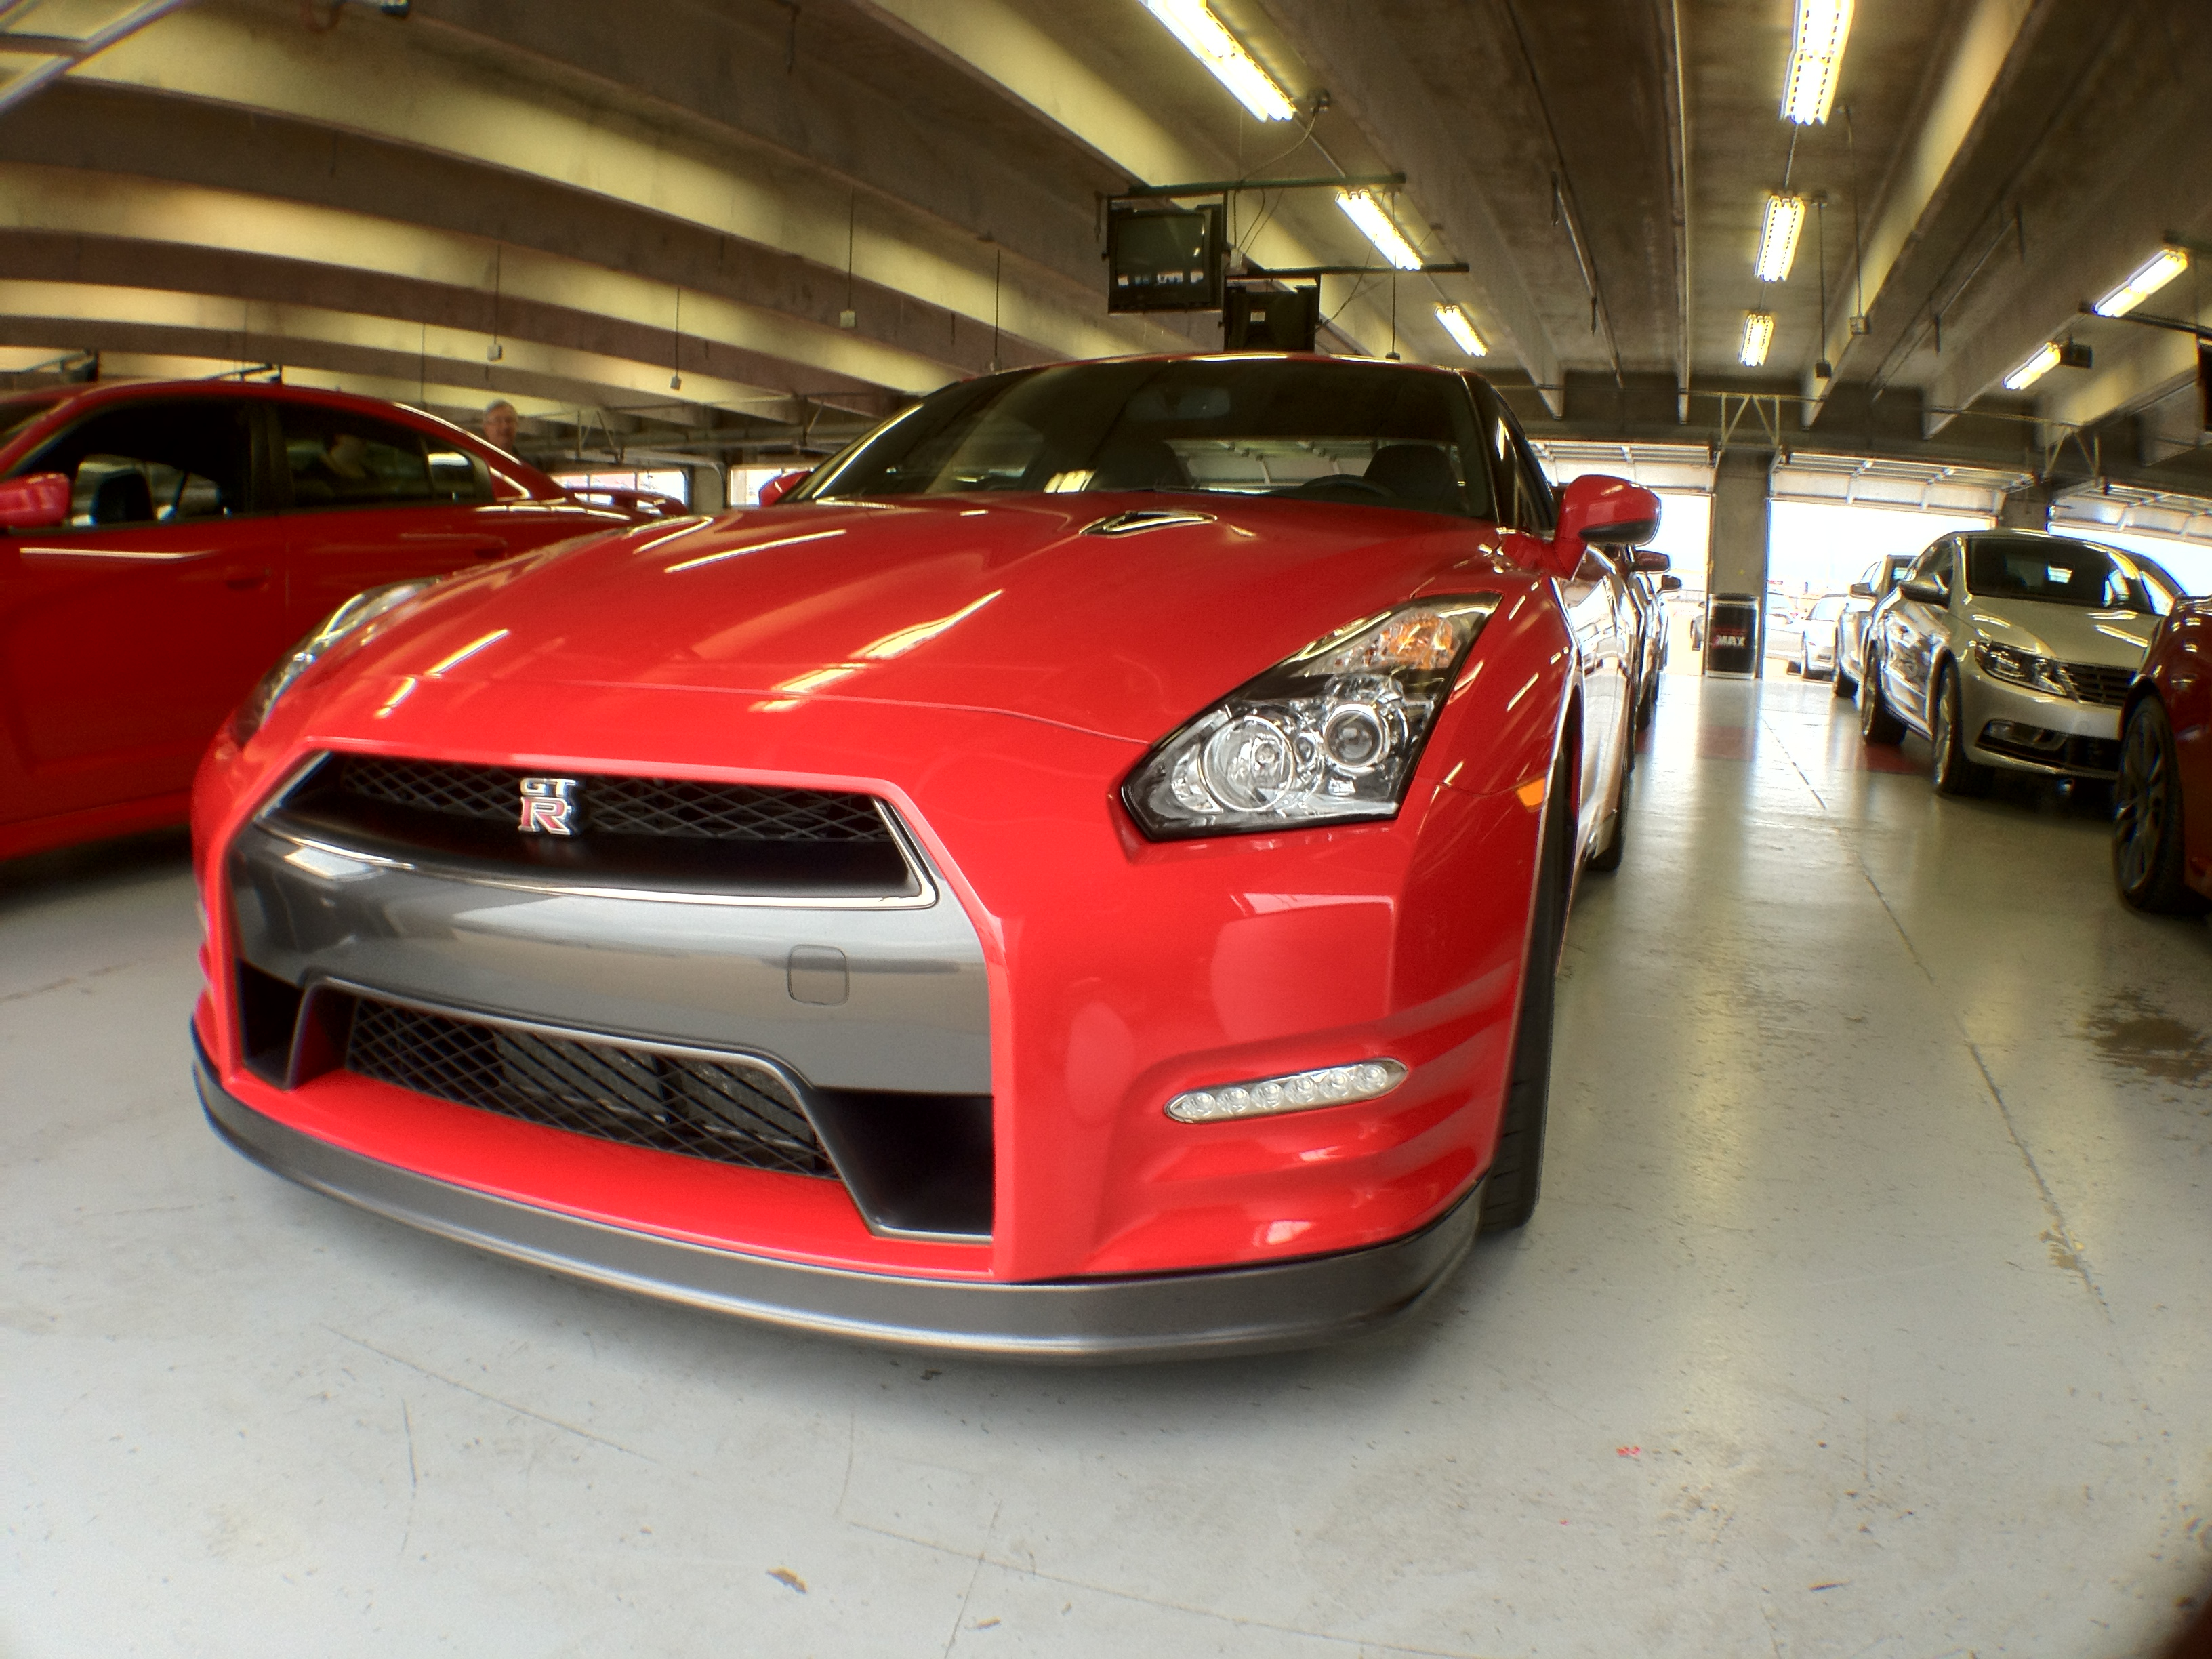 2013 Nissan GTR at the Texas Auto Roundup